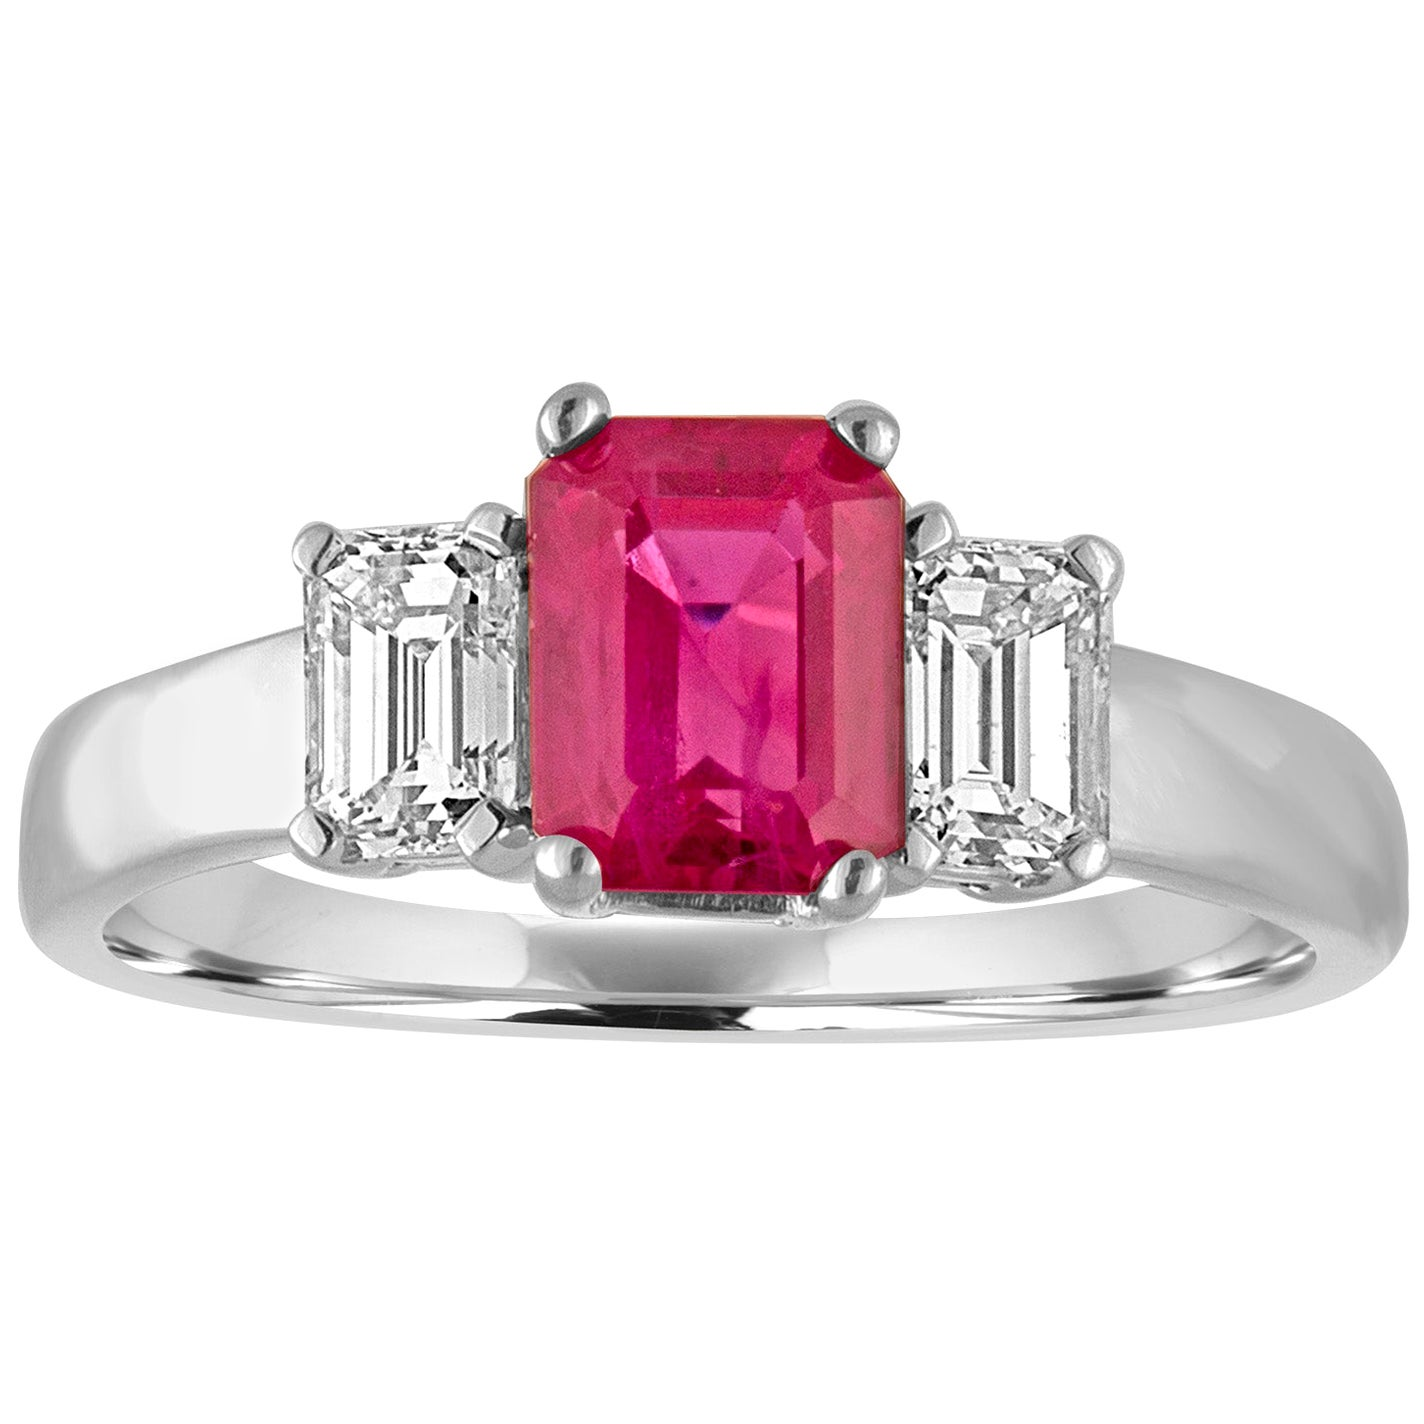 AGL and IGI Certified 1.27 Carat Burma Ruby Three-Stone Diamond Gold Ring